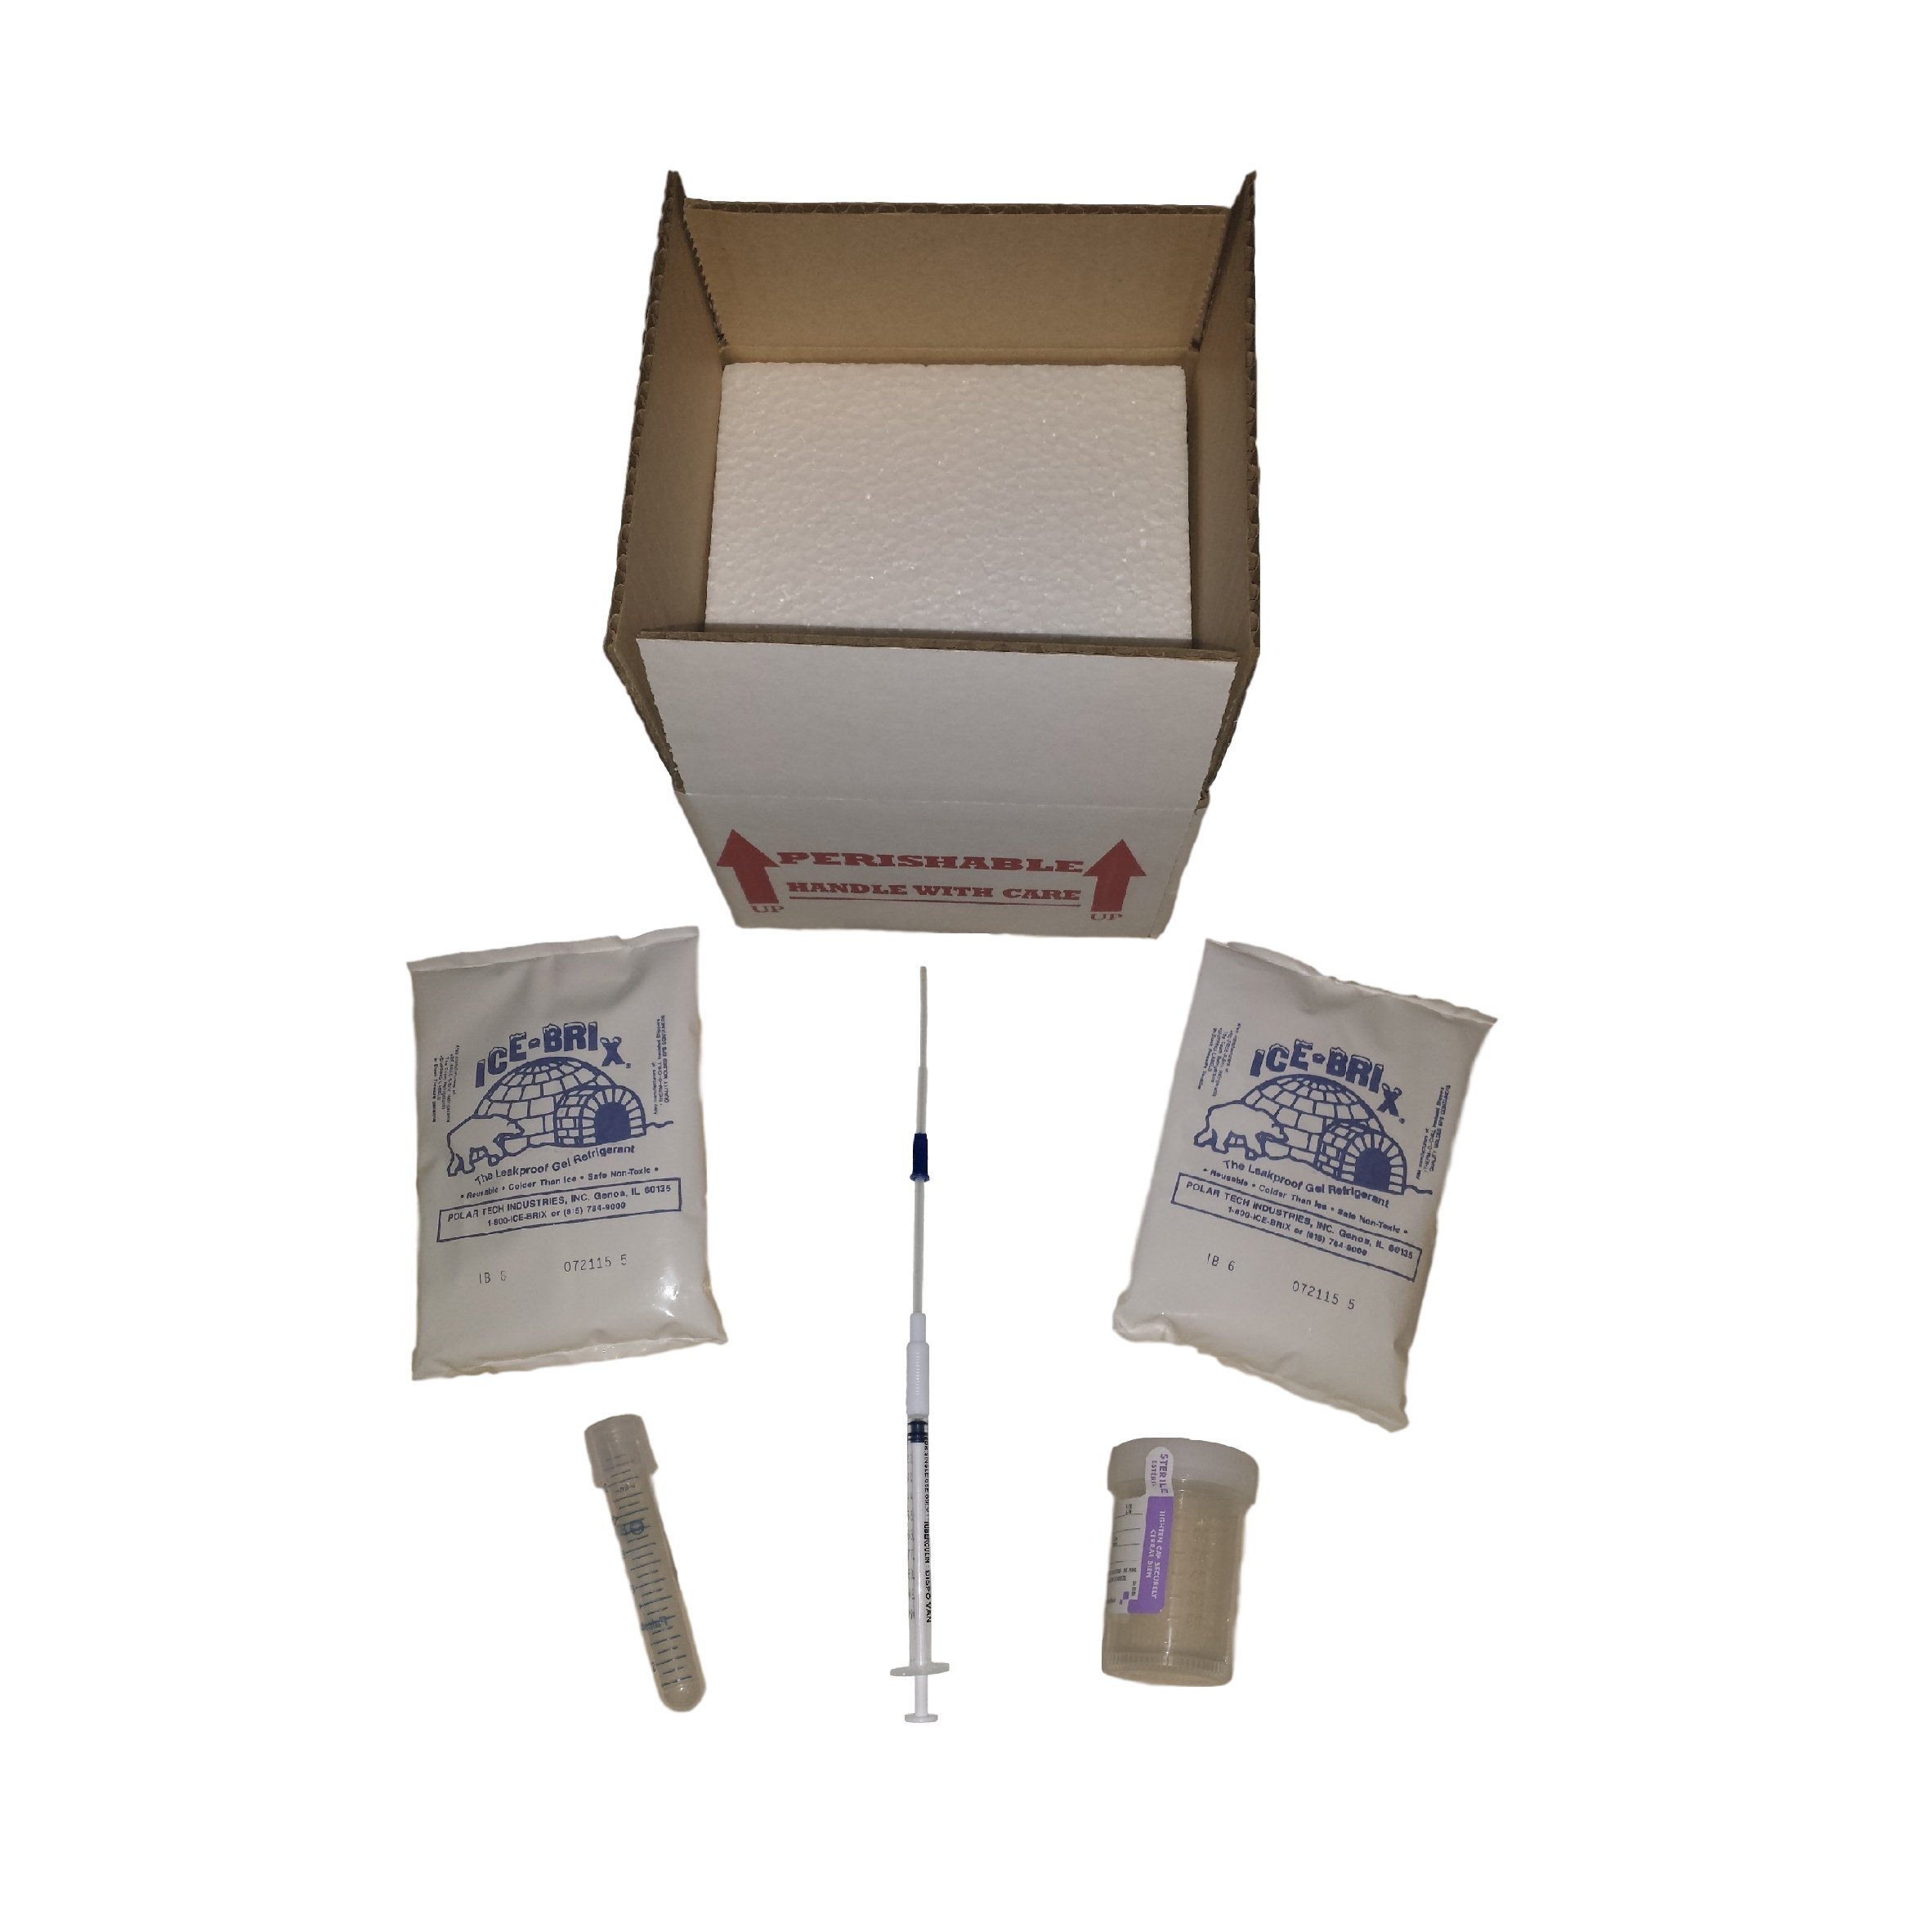 Tenderneeds Fertility Sperm Donor Collection Kit with Insulated Shipping Box by Tenderneeds Fertility